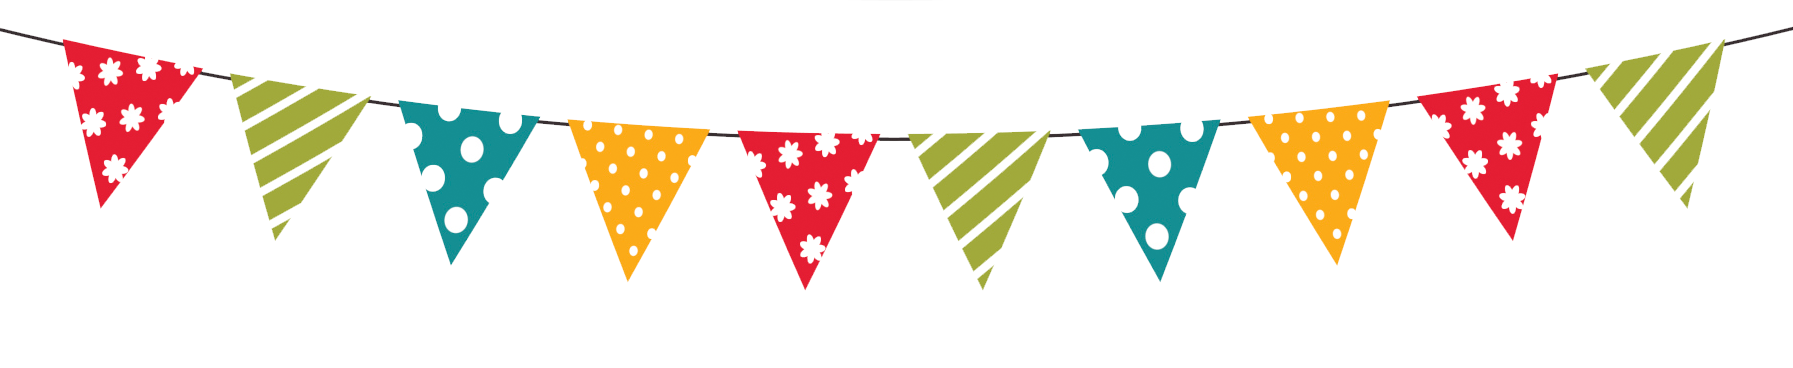 Heights family picnic richardson. Families clipart banner